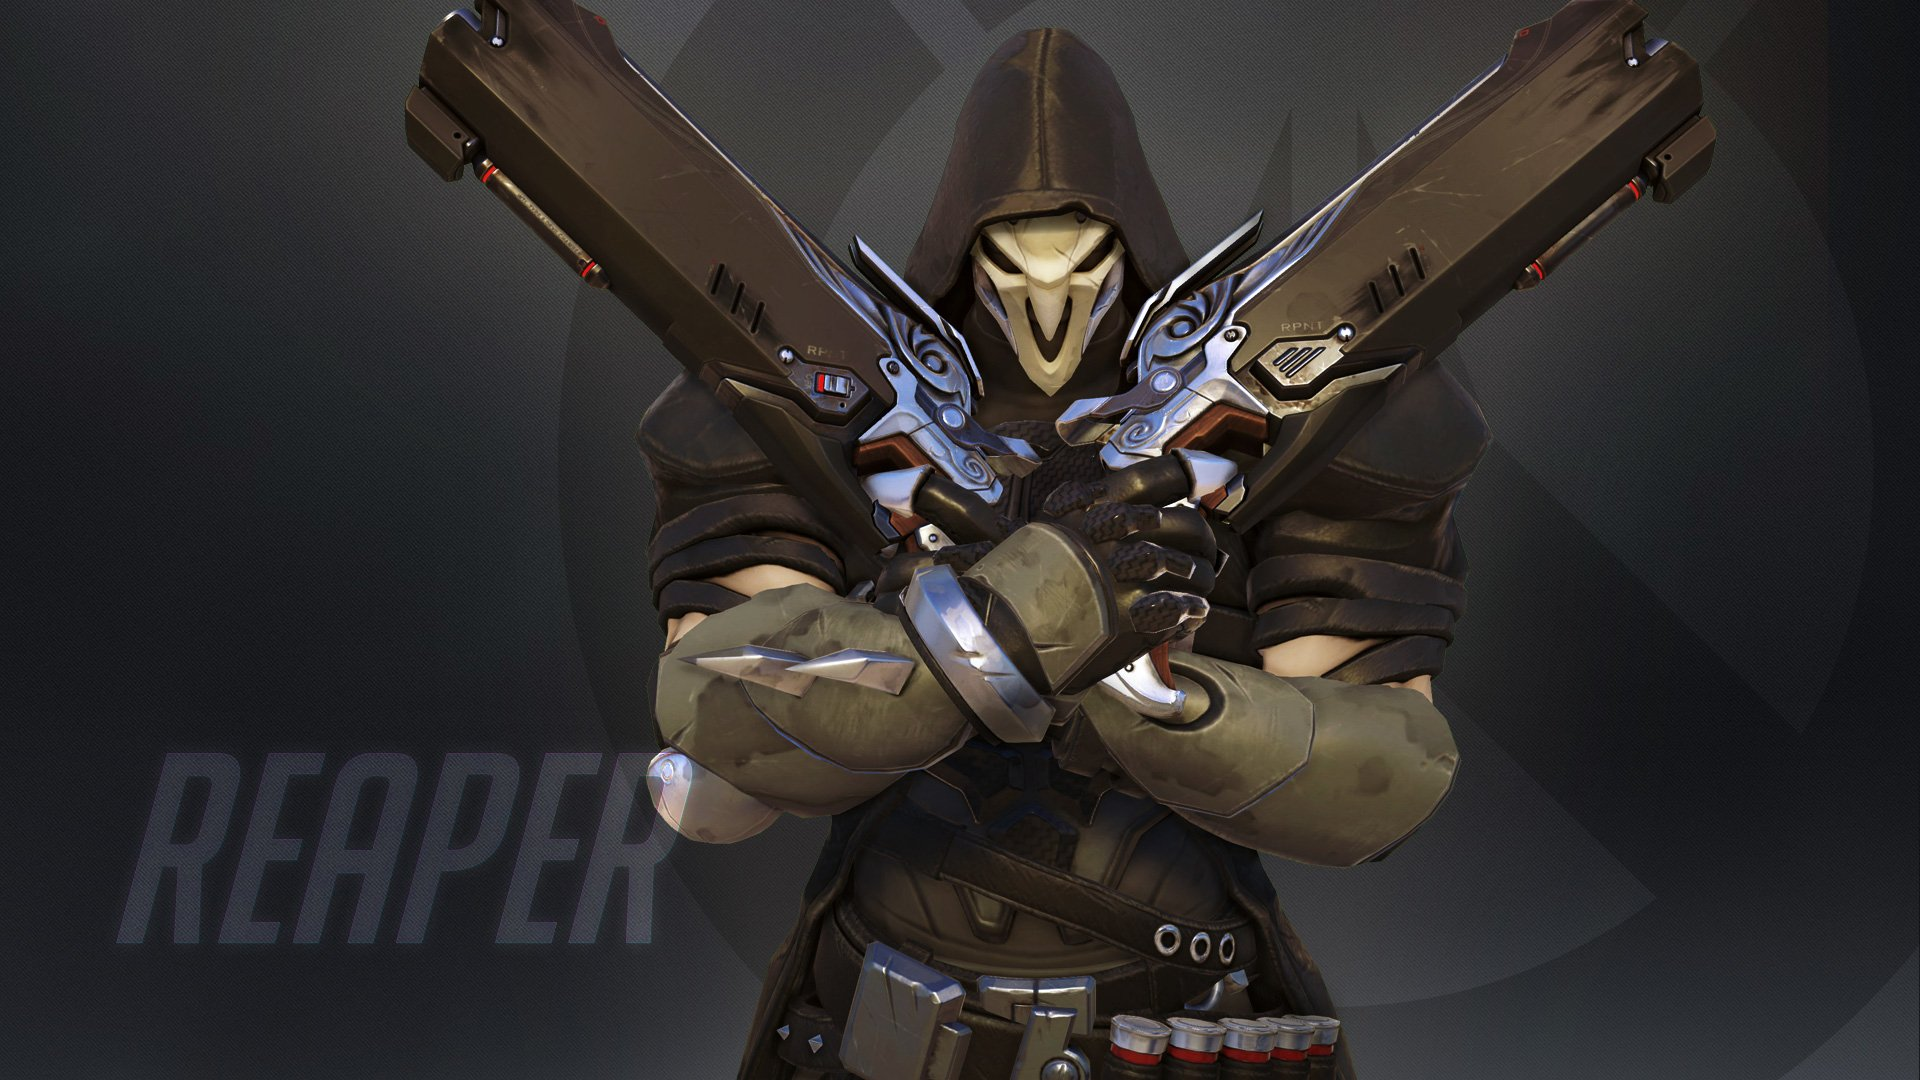 Overwatch full hd wallpaper and background 1920x1280 - Hd Wallpaper Background Id 556379 1920x1080 Video Game Overwatch